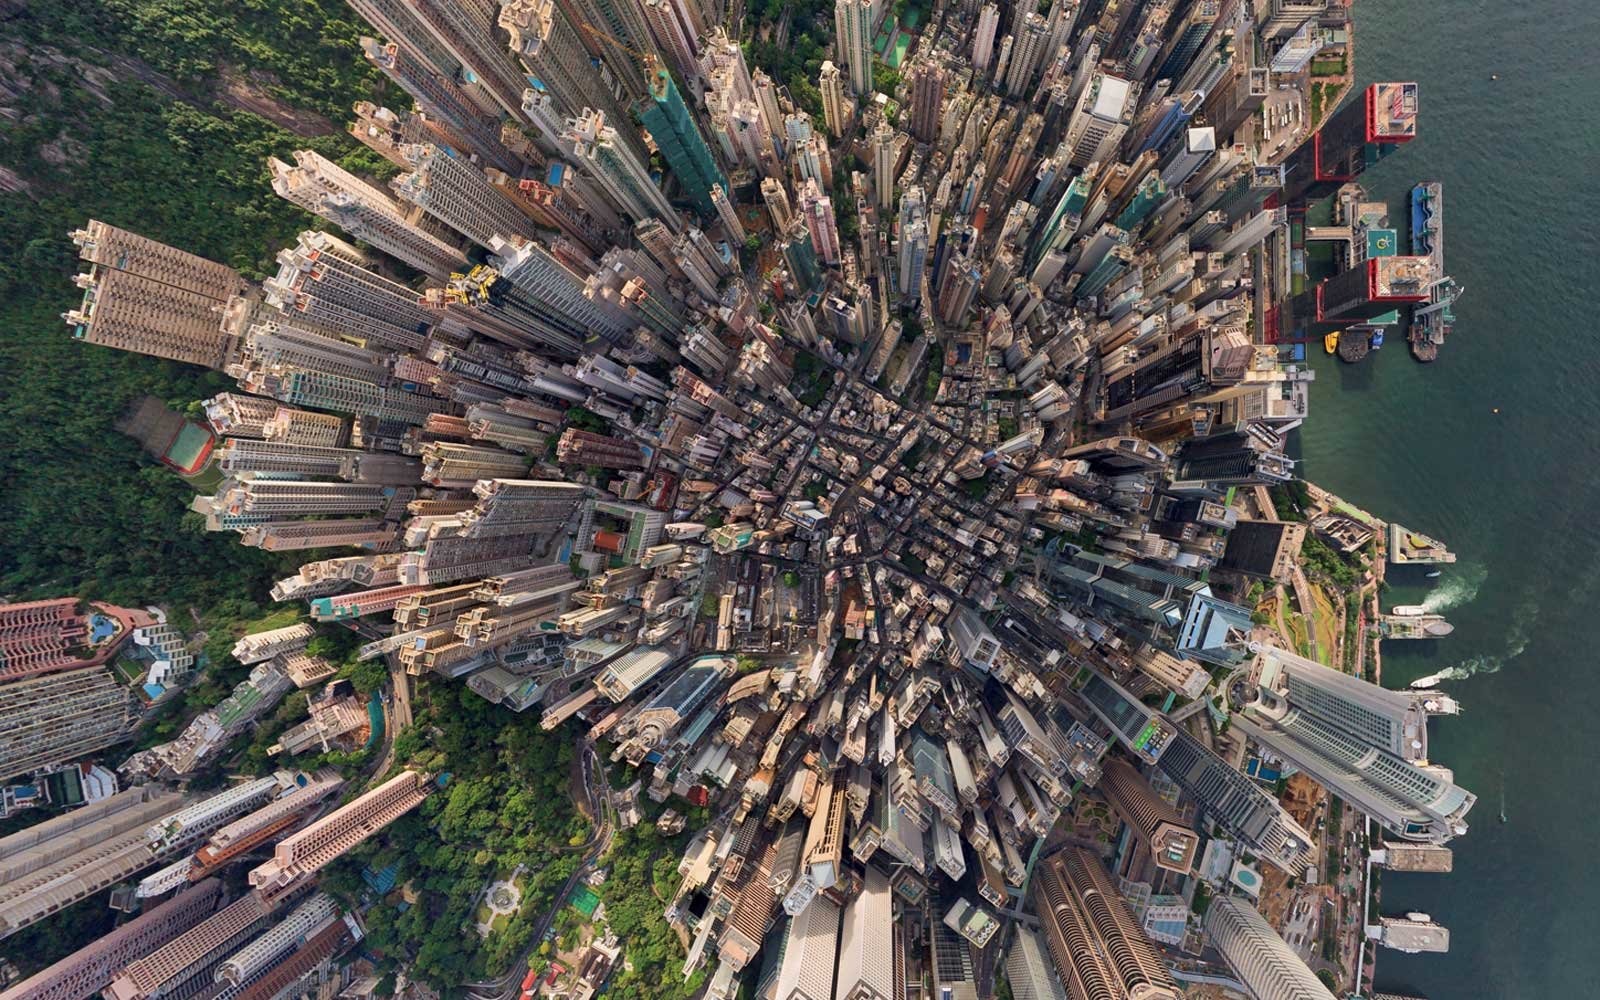 12 Aerial Photos That Show the World in Ways You've Never ...